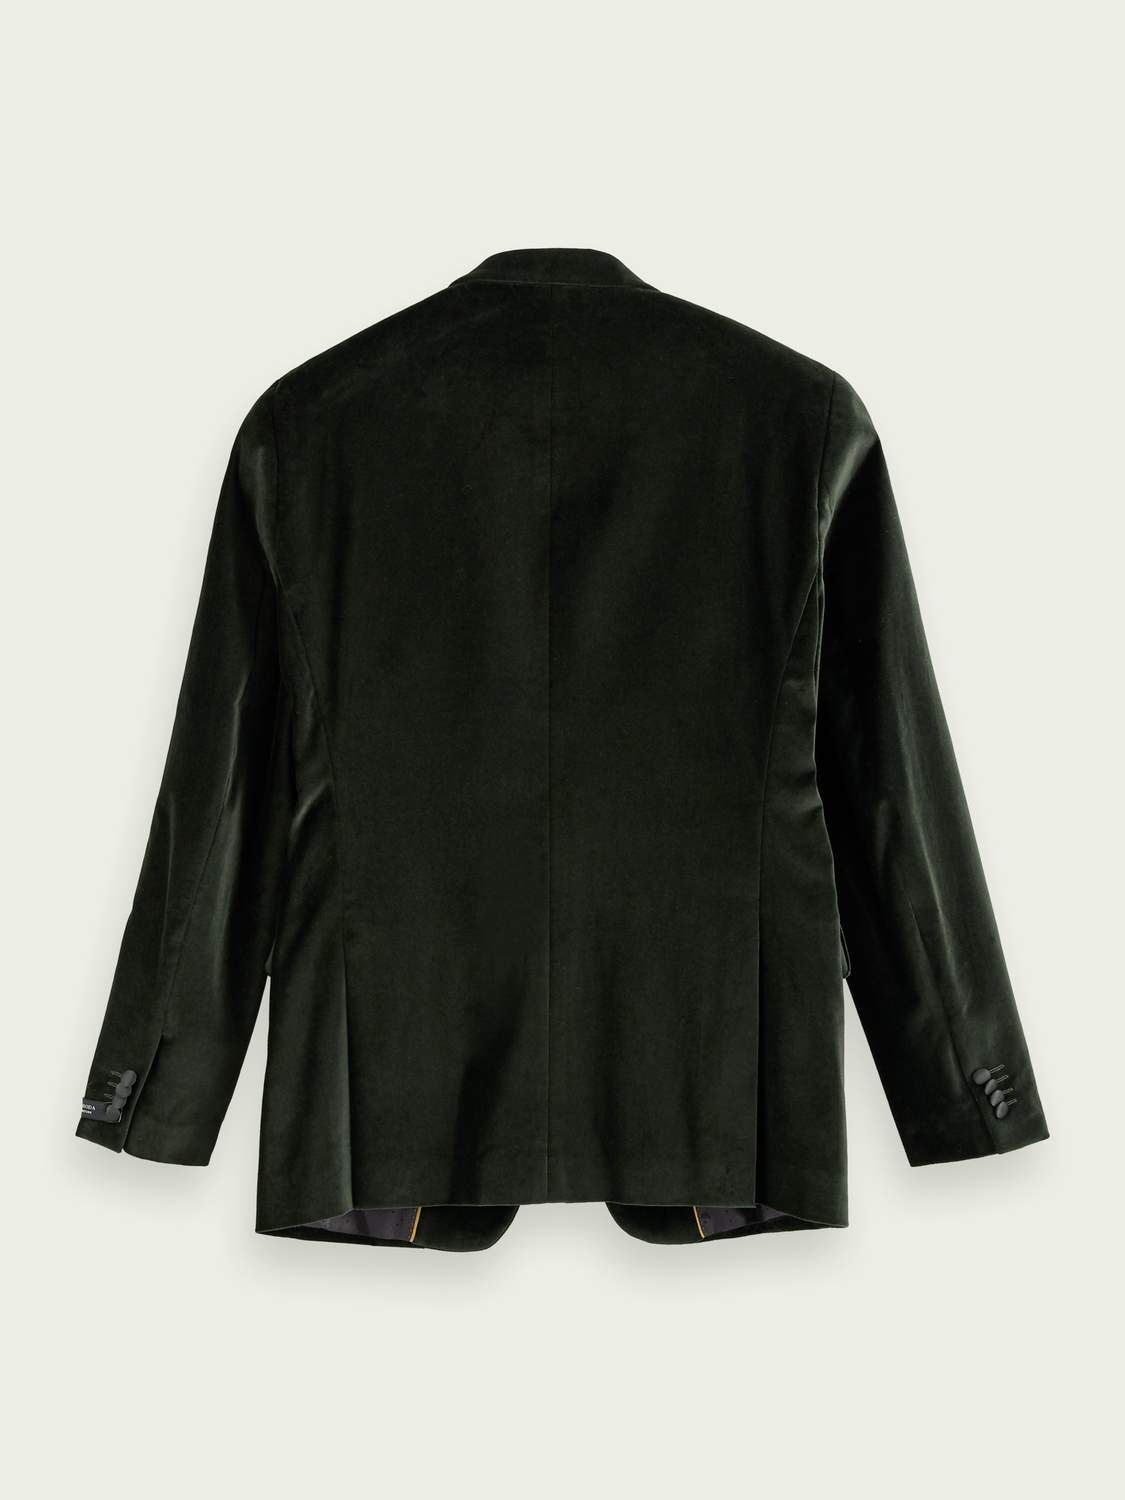 Homme Blazer en velours avec finitions en satin